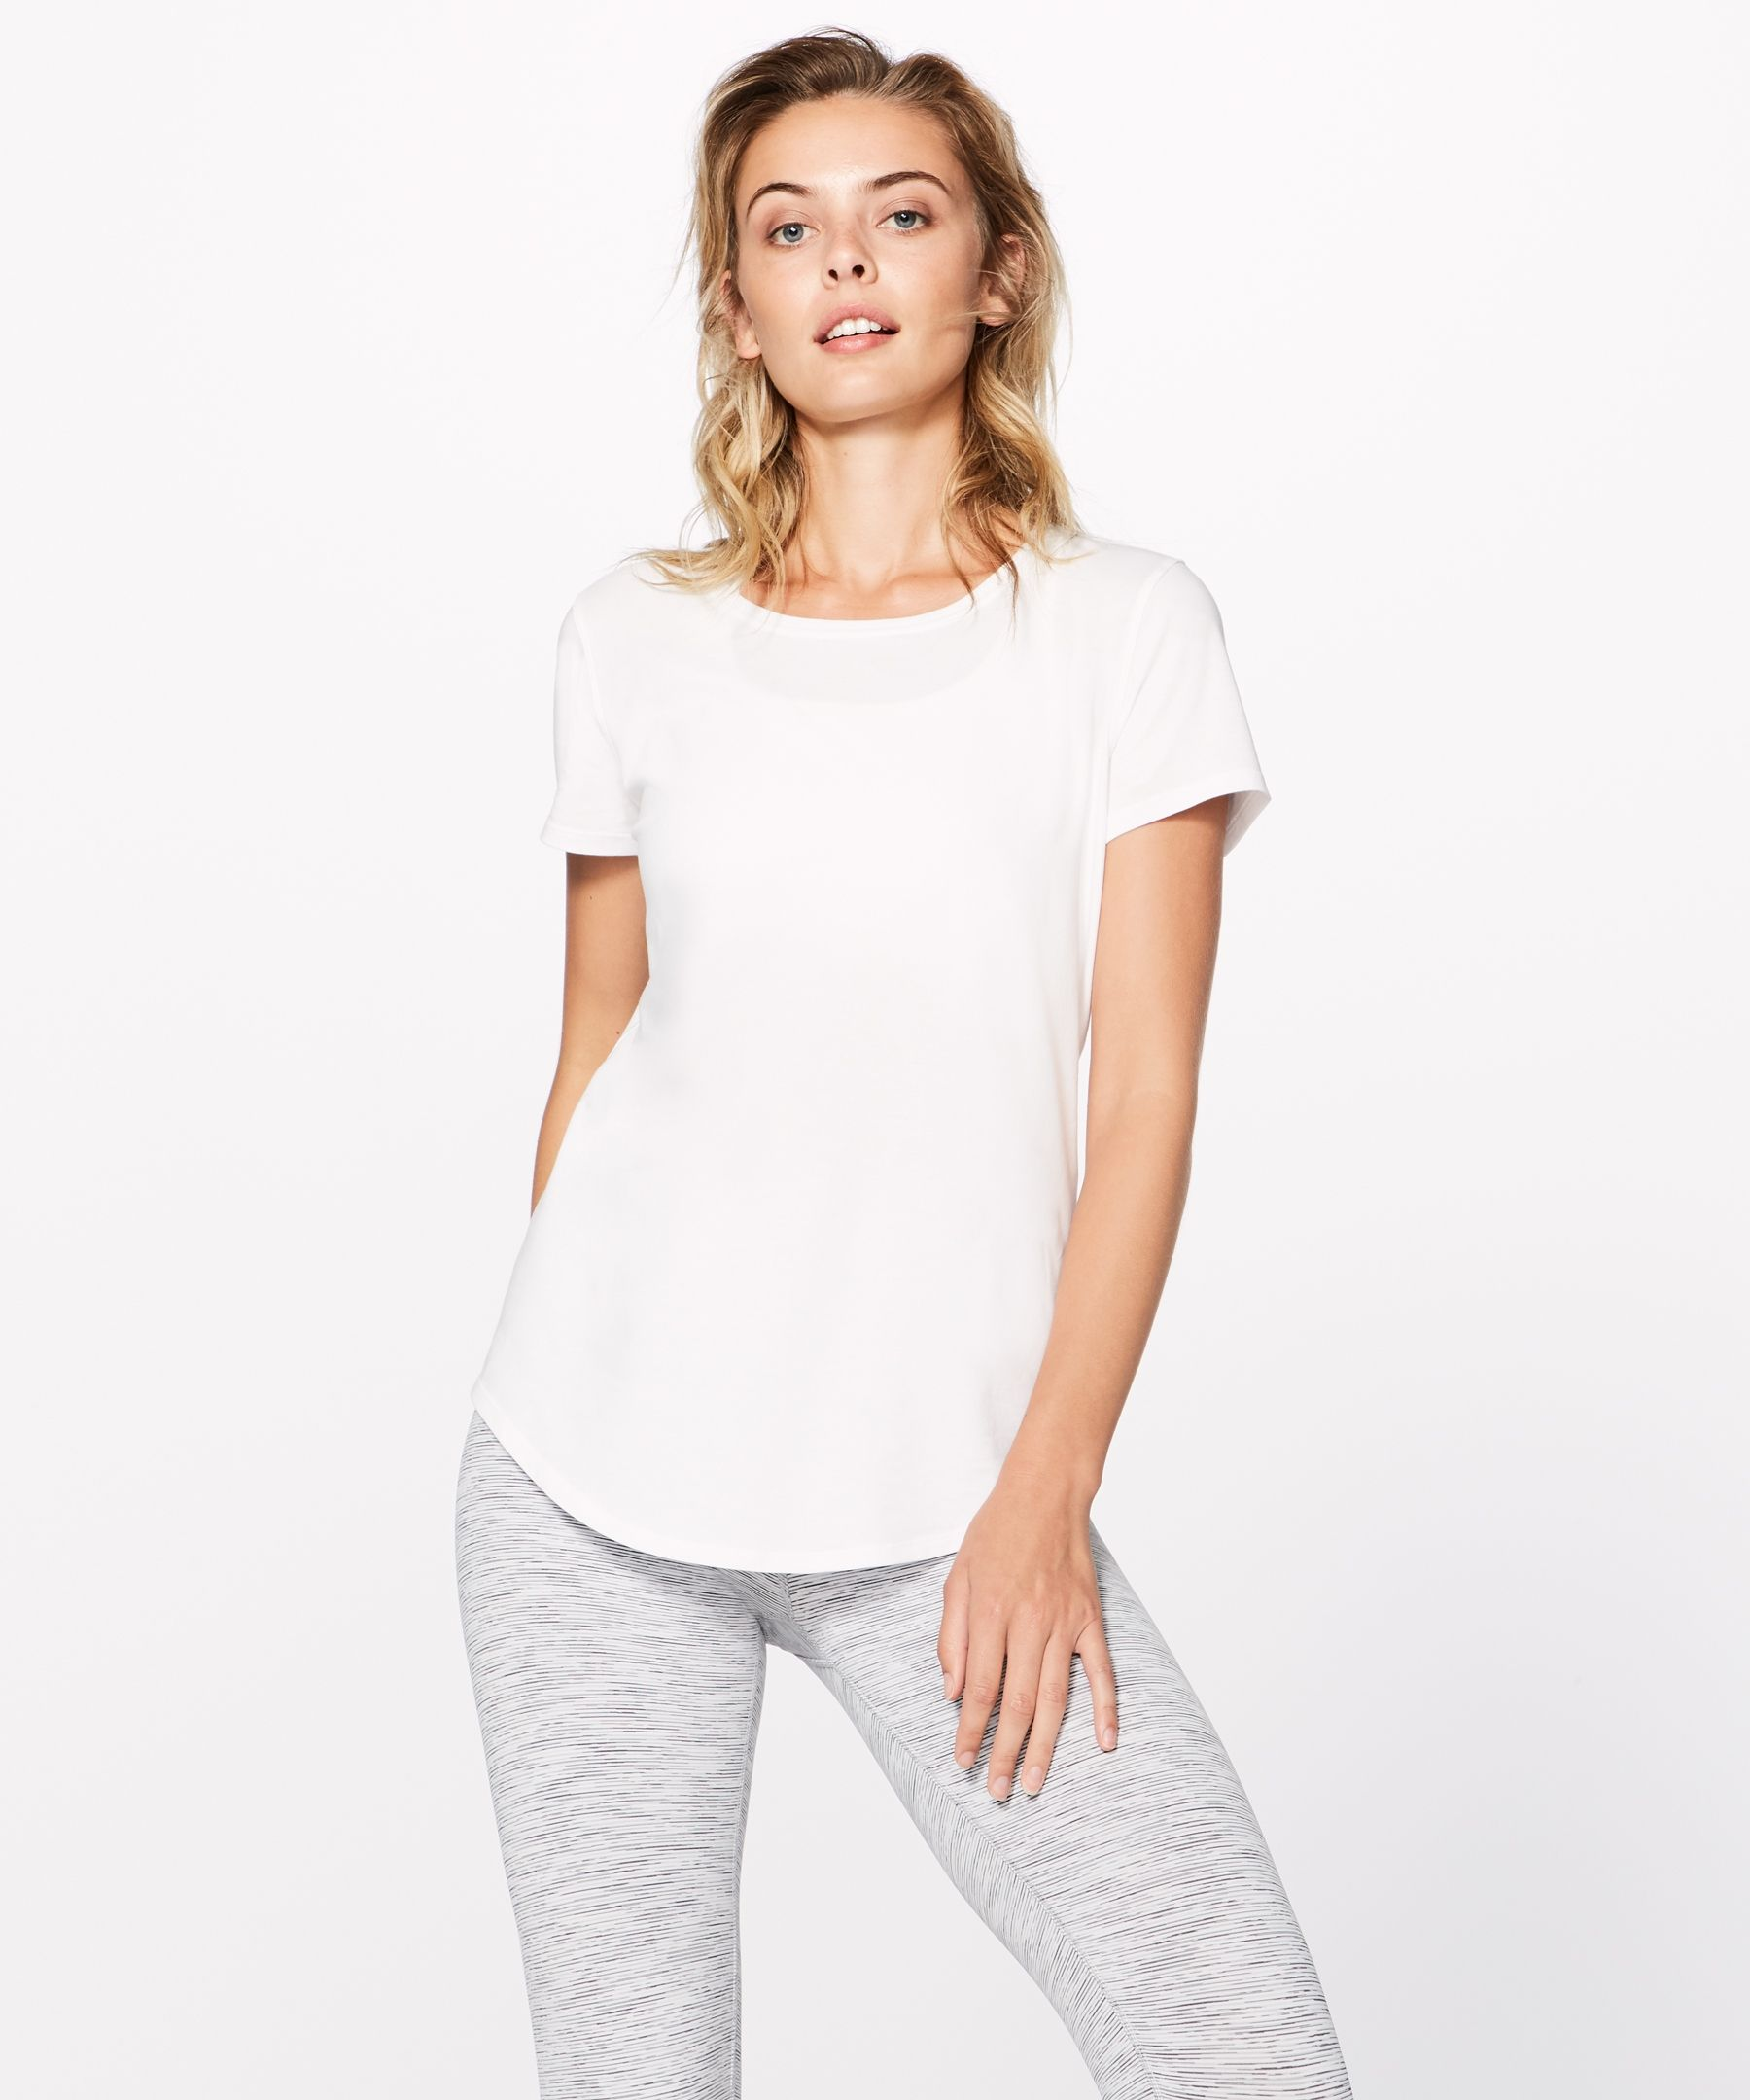 278b097f0ae lululemon Women's Love Crew III, White, Size 6 | Products in 2019 ...